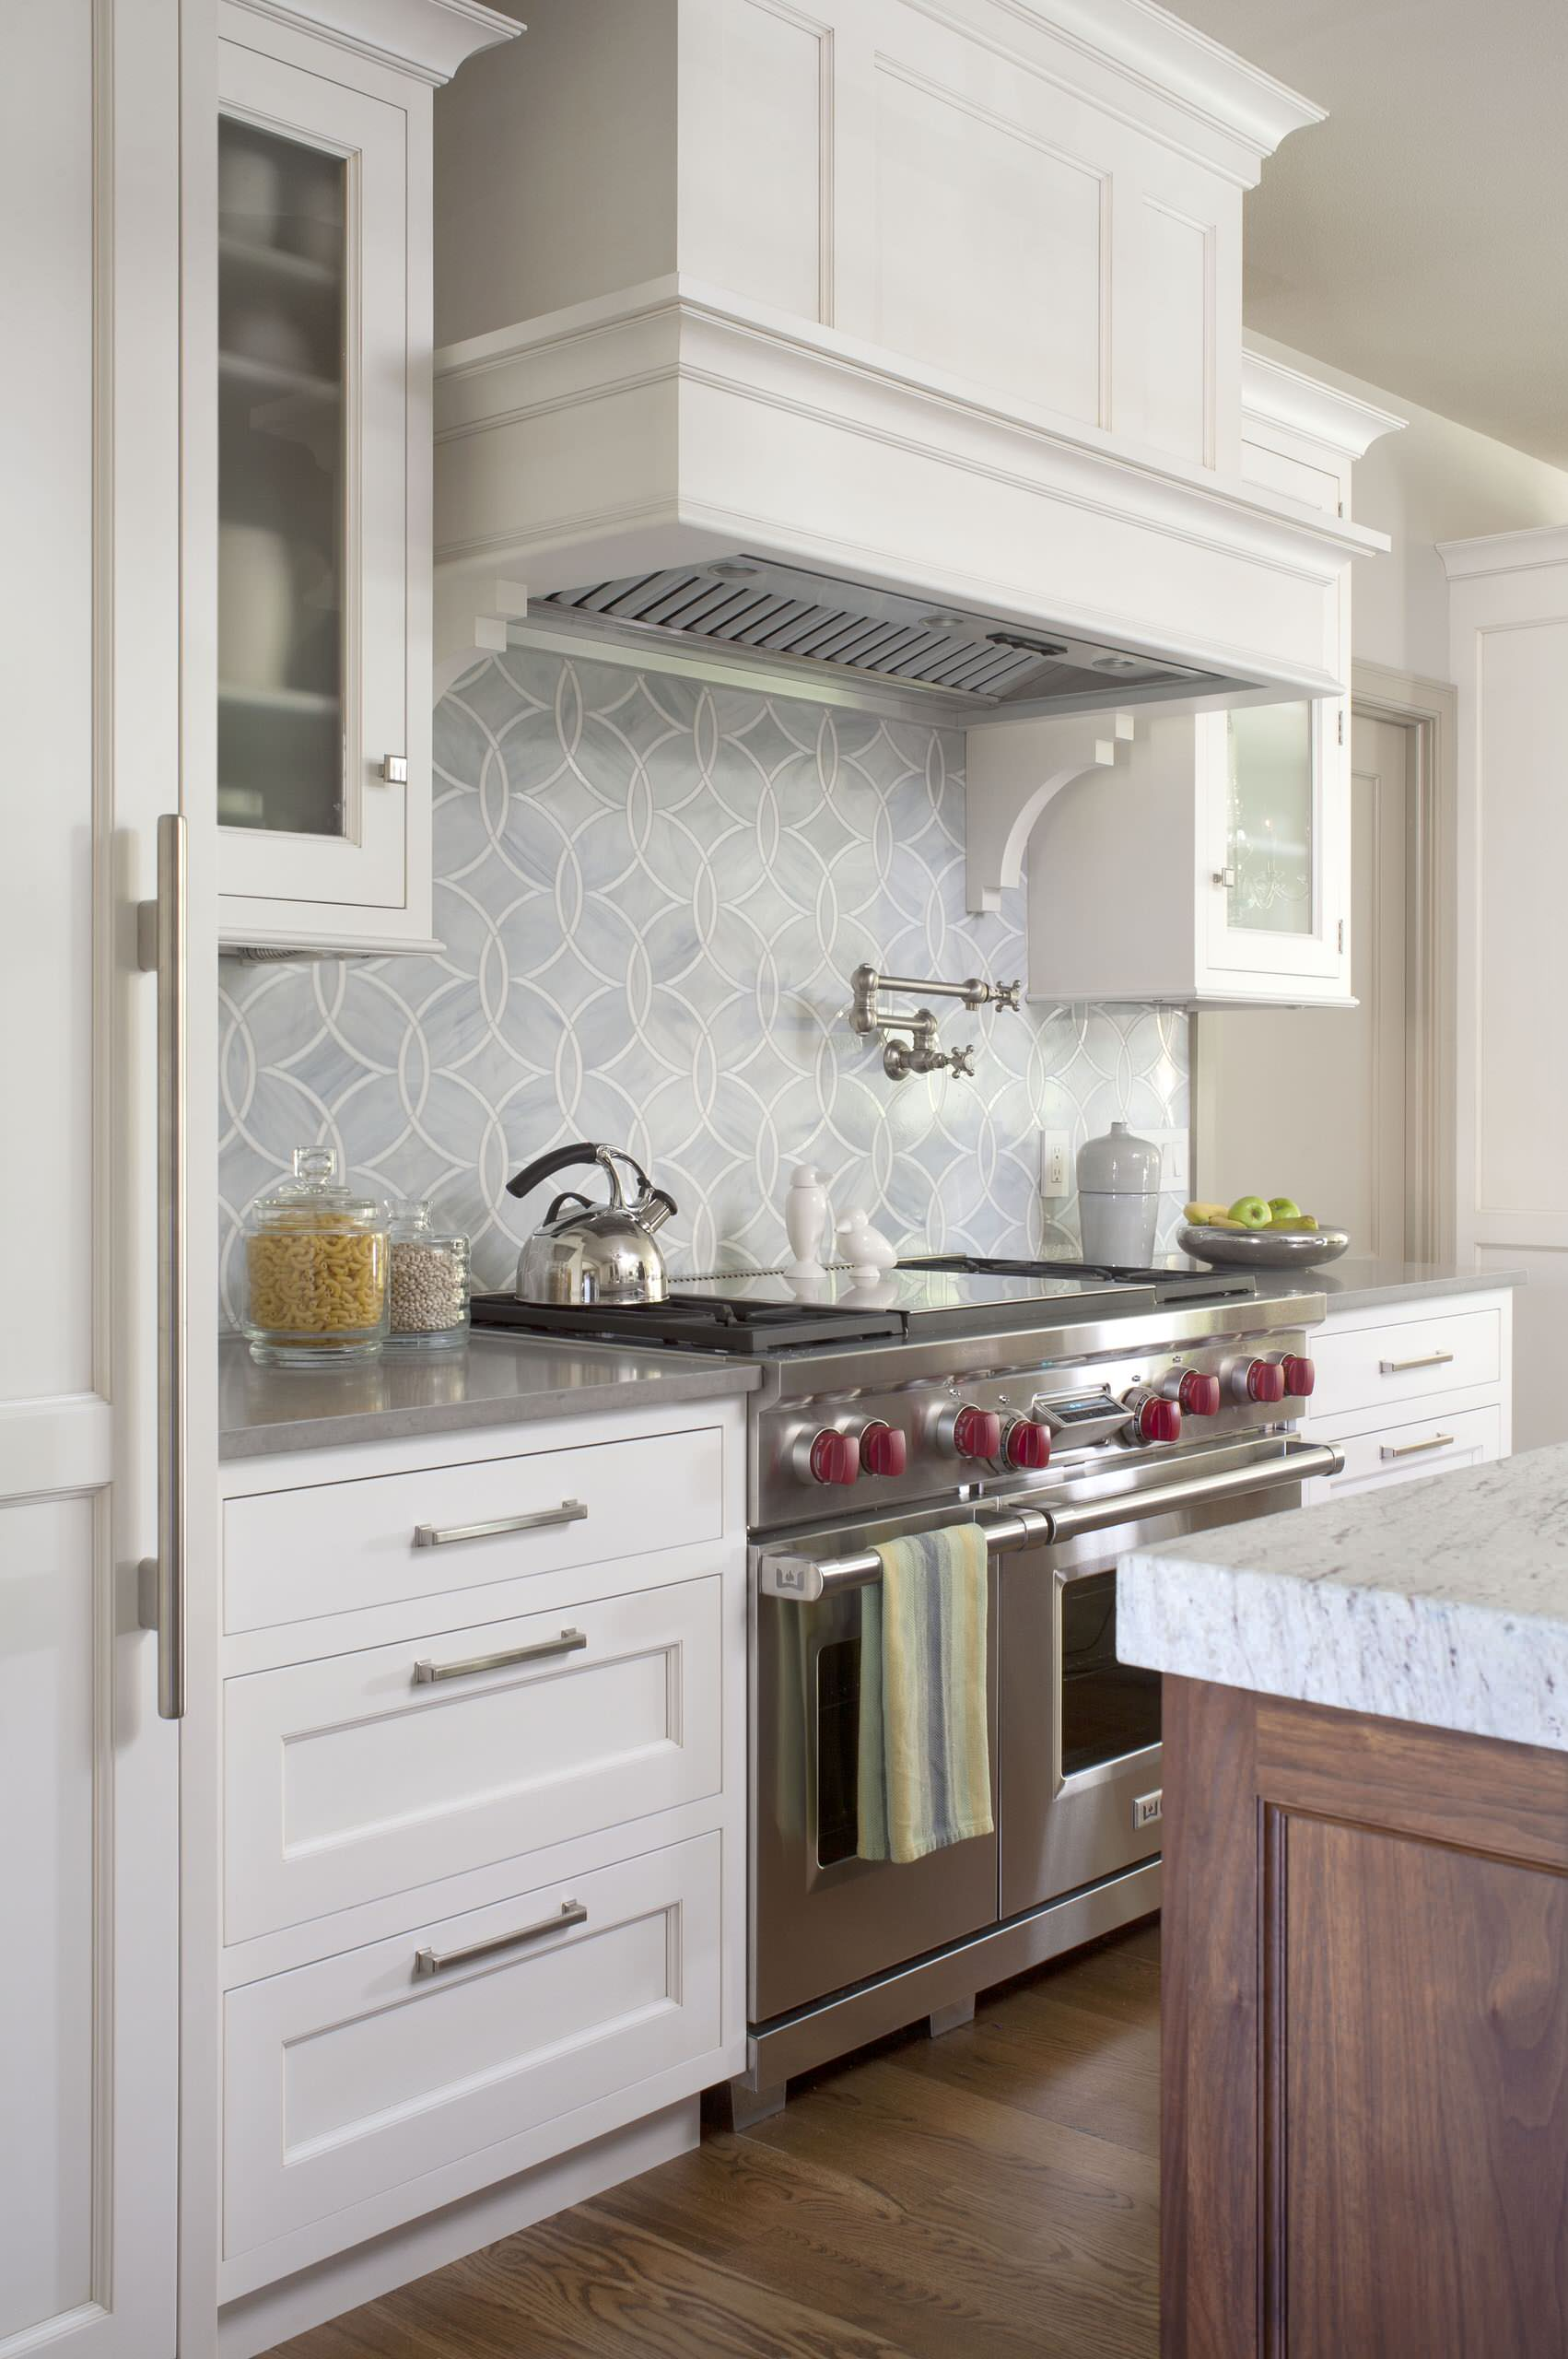 Ann Sacks Backsplash Tile Houzz